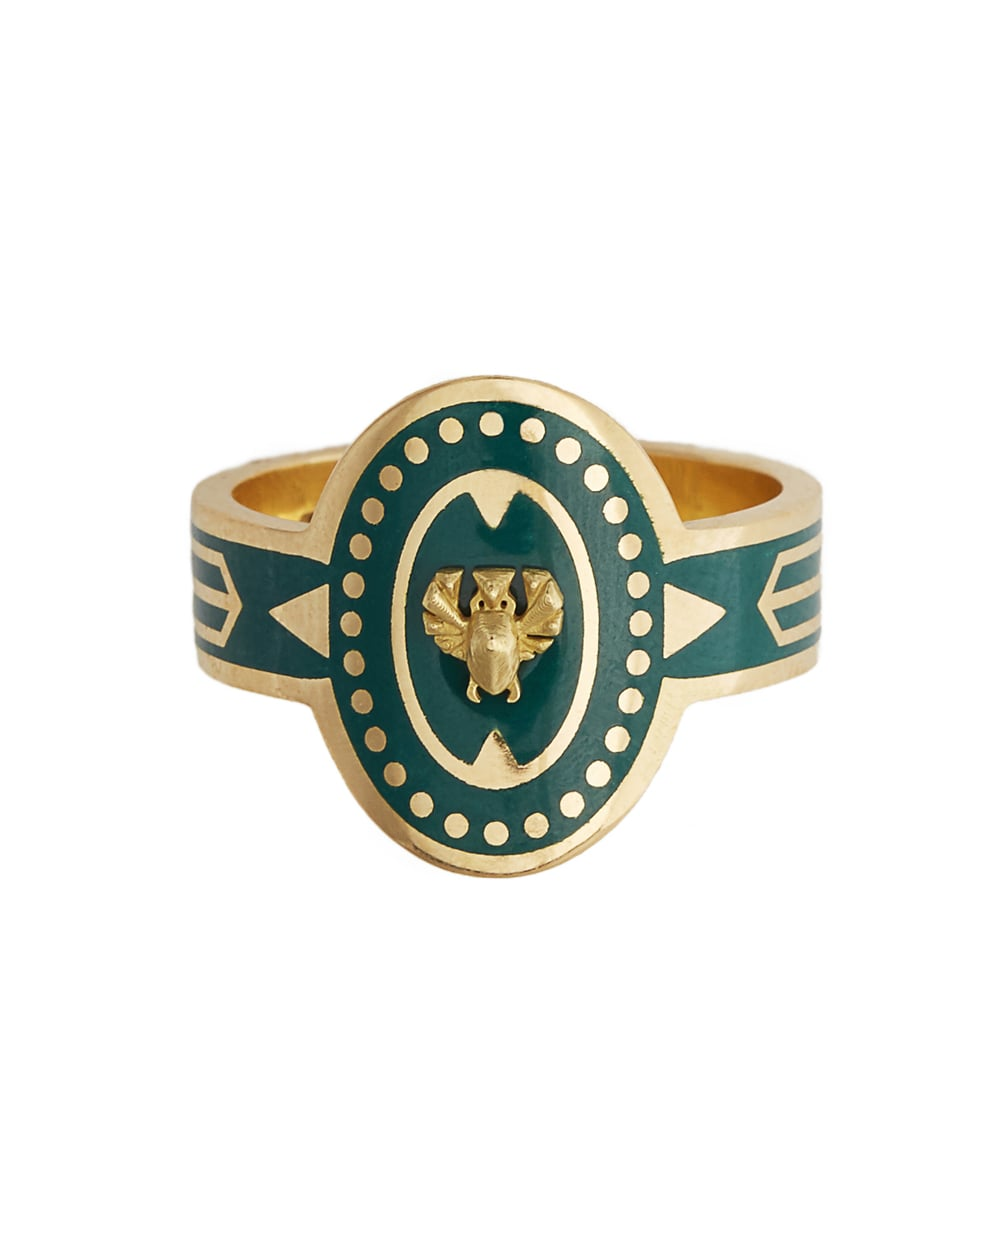 The scarab protection cigar band, available in green enamel and 18K gold.